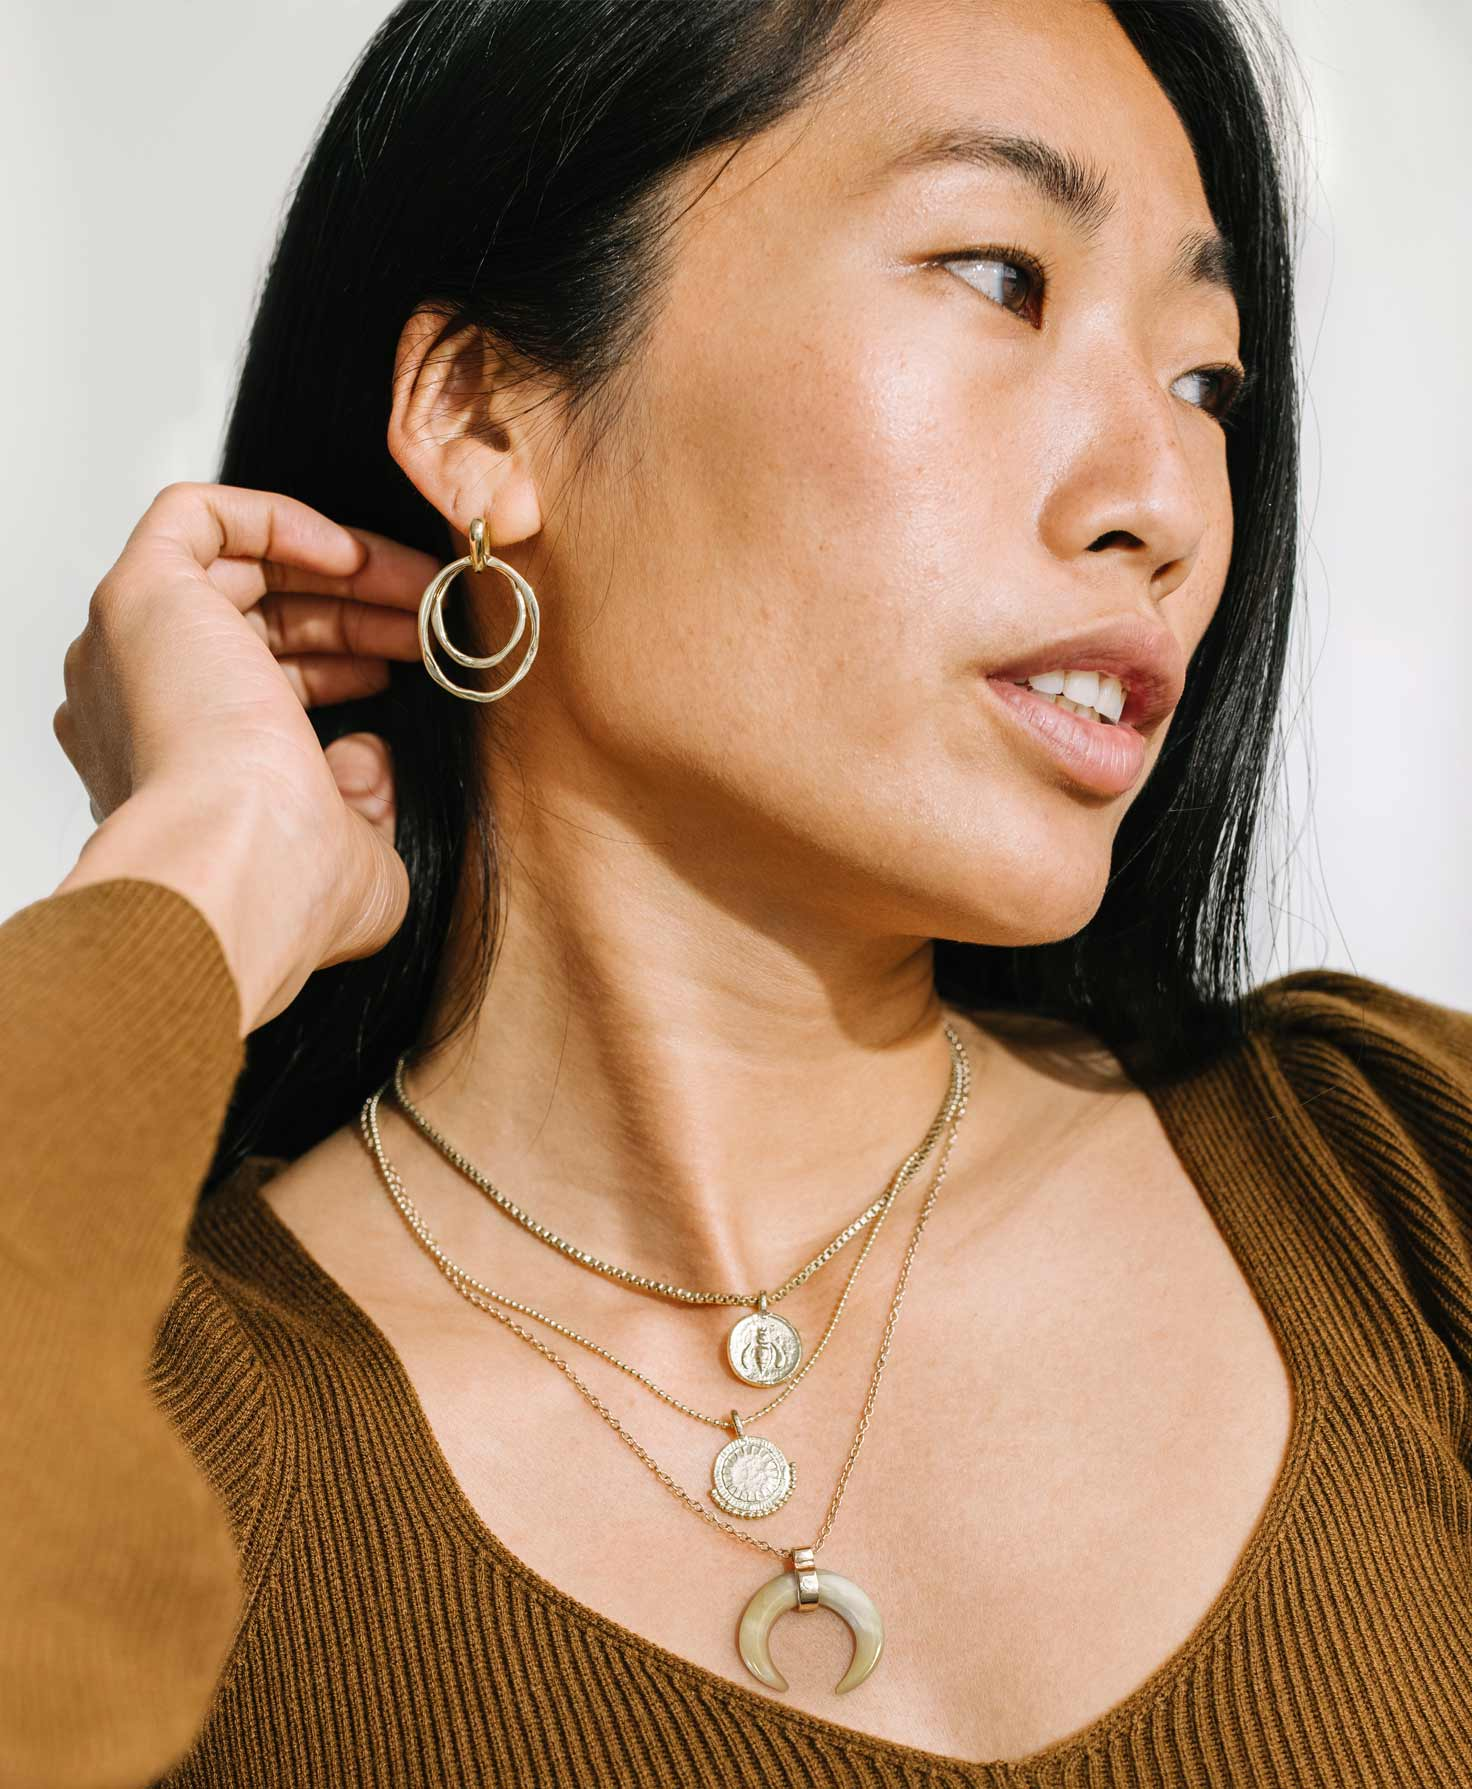 A model wears the two Charmed Medallion Necklaces layered with the Fable Necklace, another gold necklace with a neutral color palette. She finishes her metallic look with the golden Wild Link Earrings.